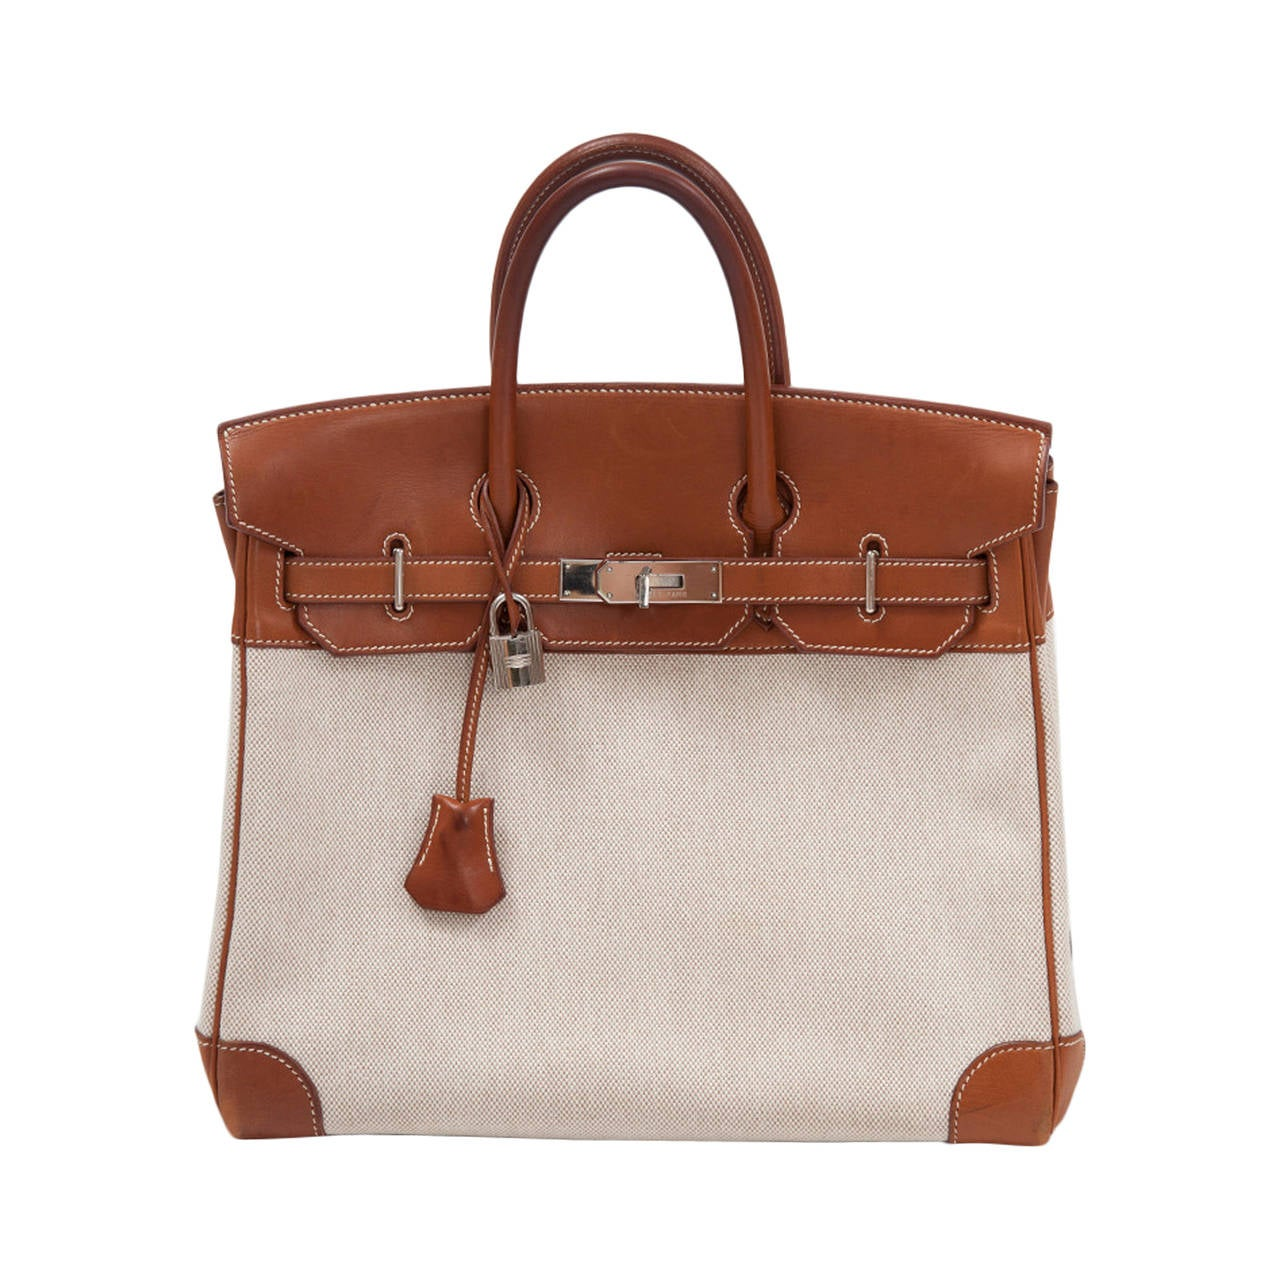 best replica hermes evelyne bag - Rare Hermes Toile and Natural Barenia Leather 30 cm Birkin Handbag ...